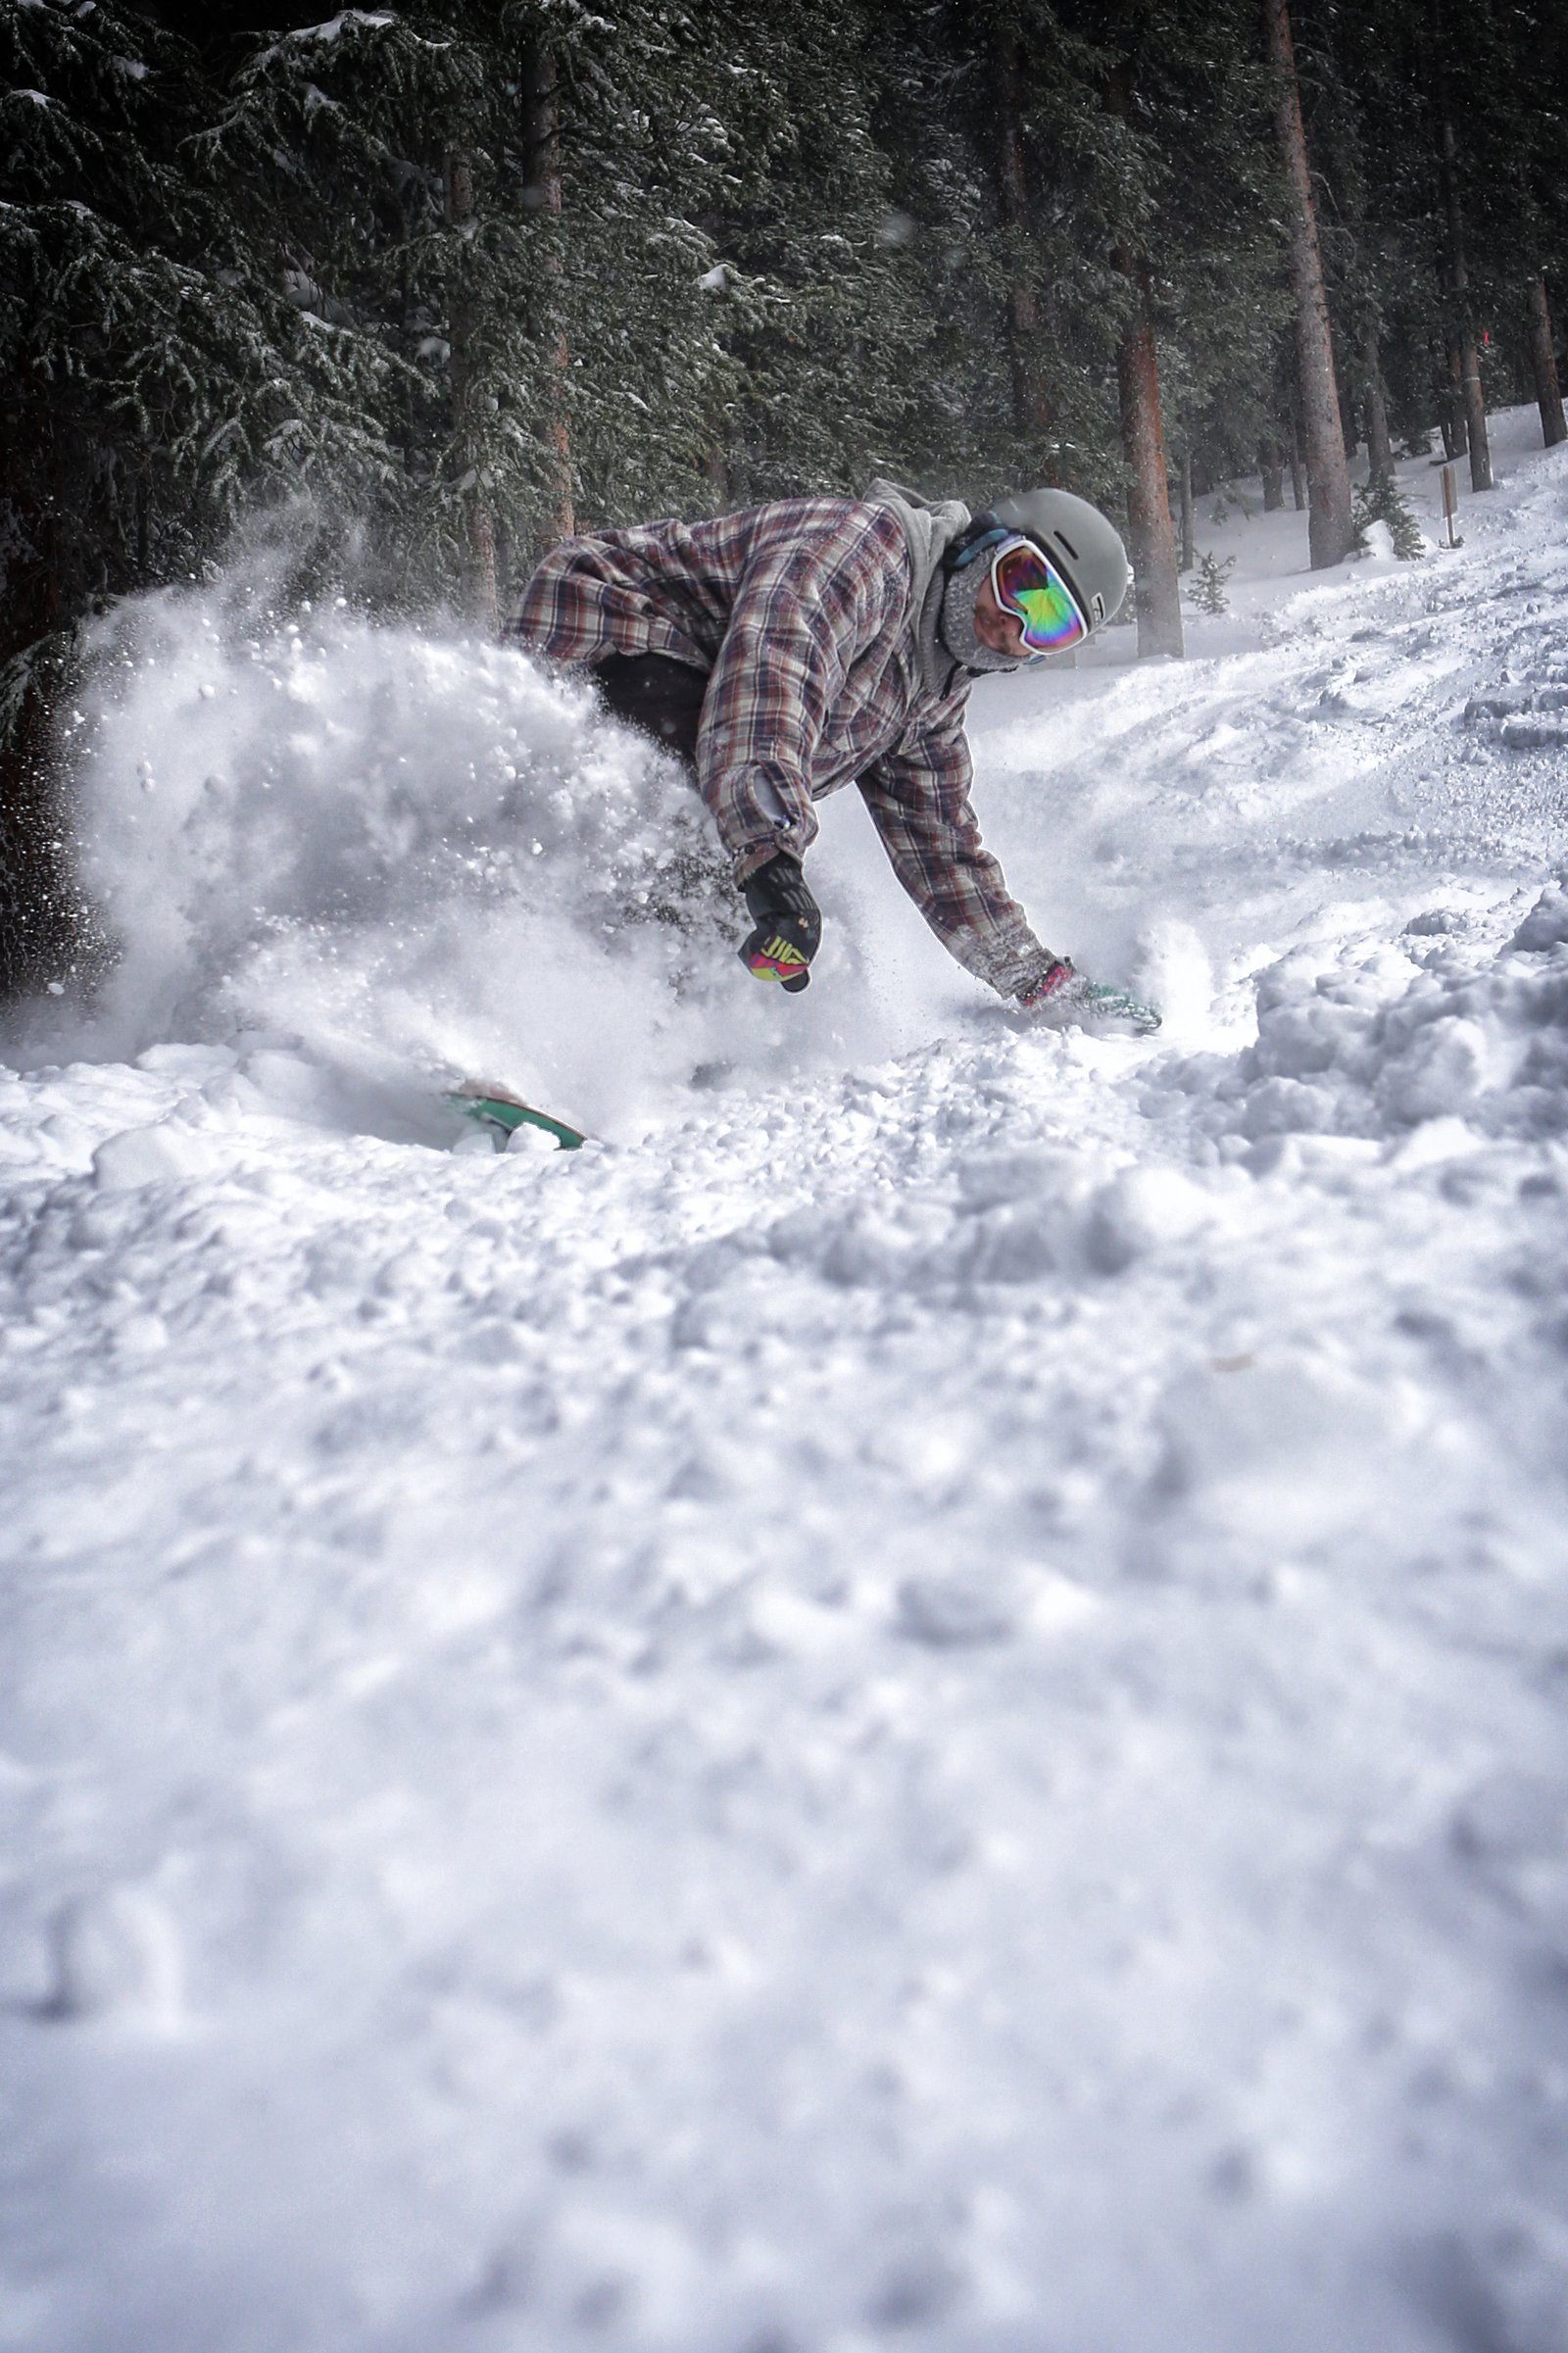 Opening Day Pow!